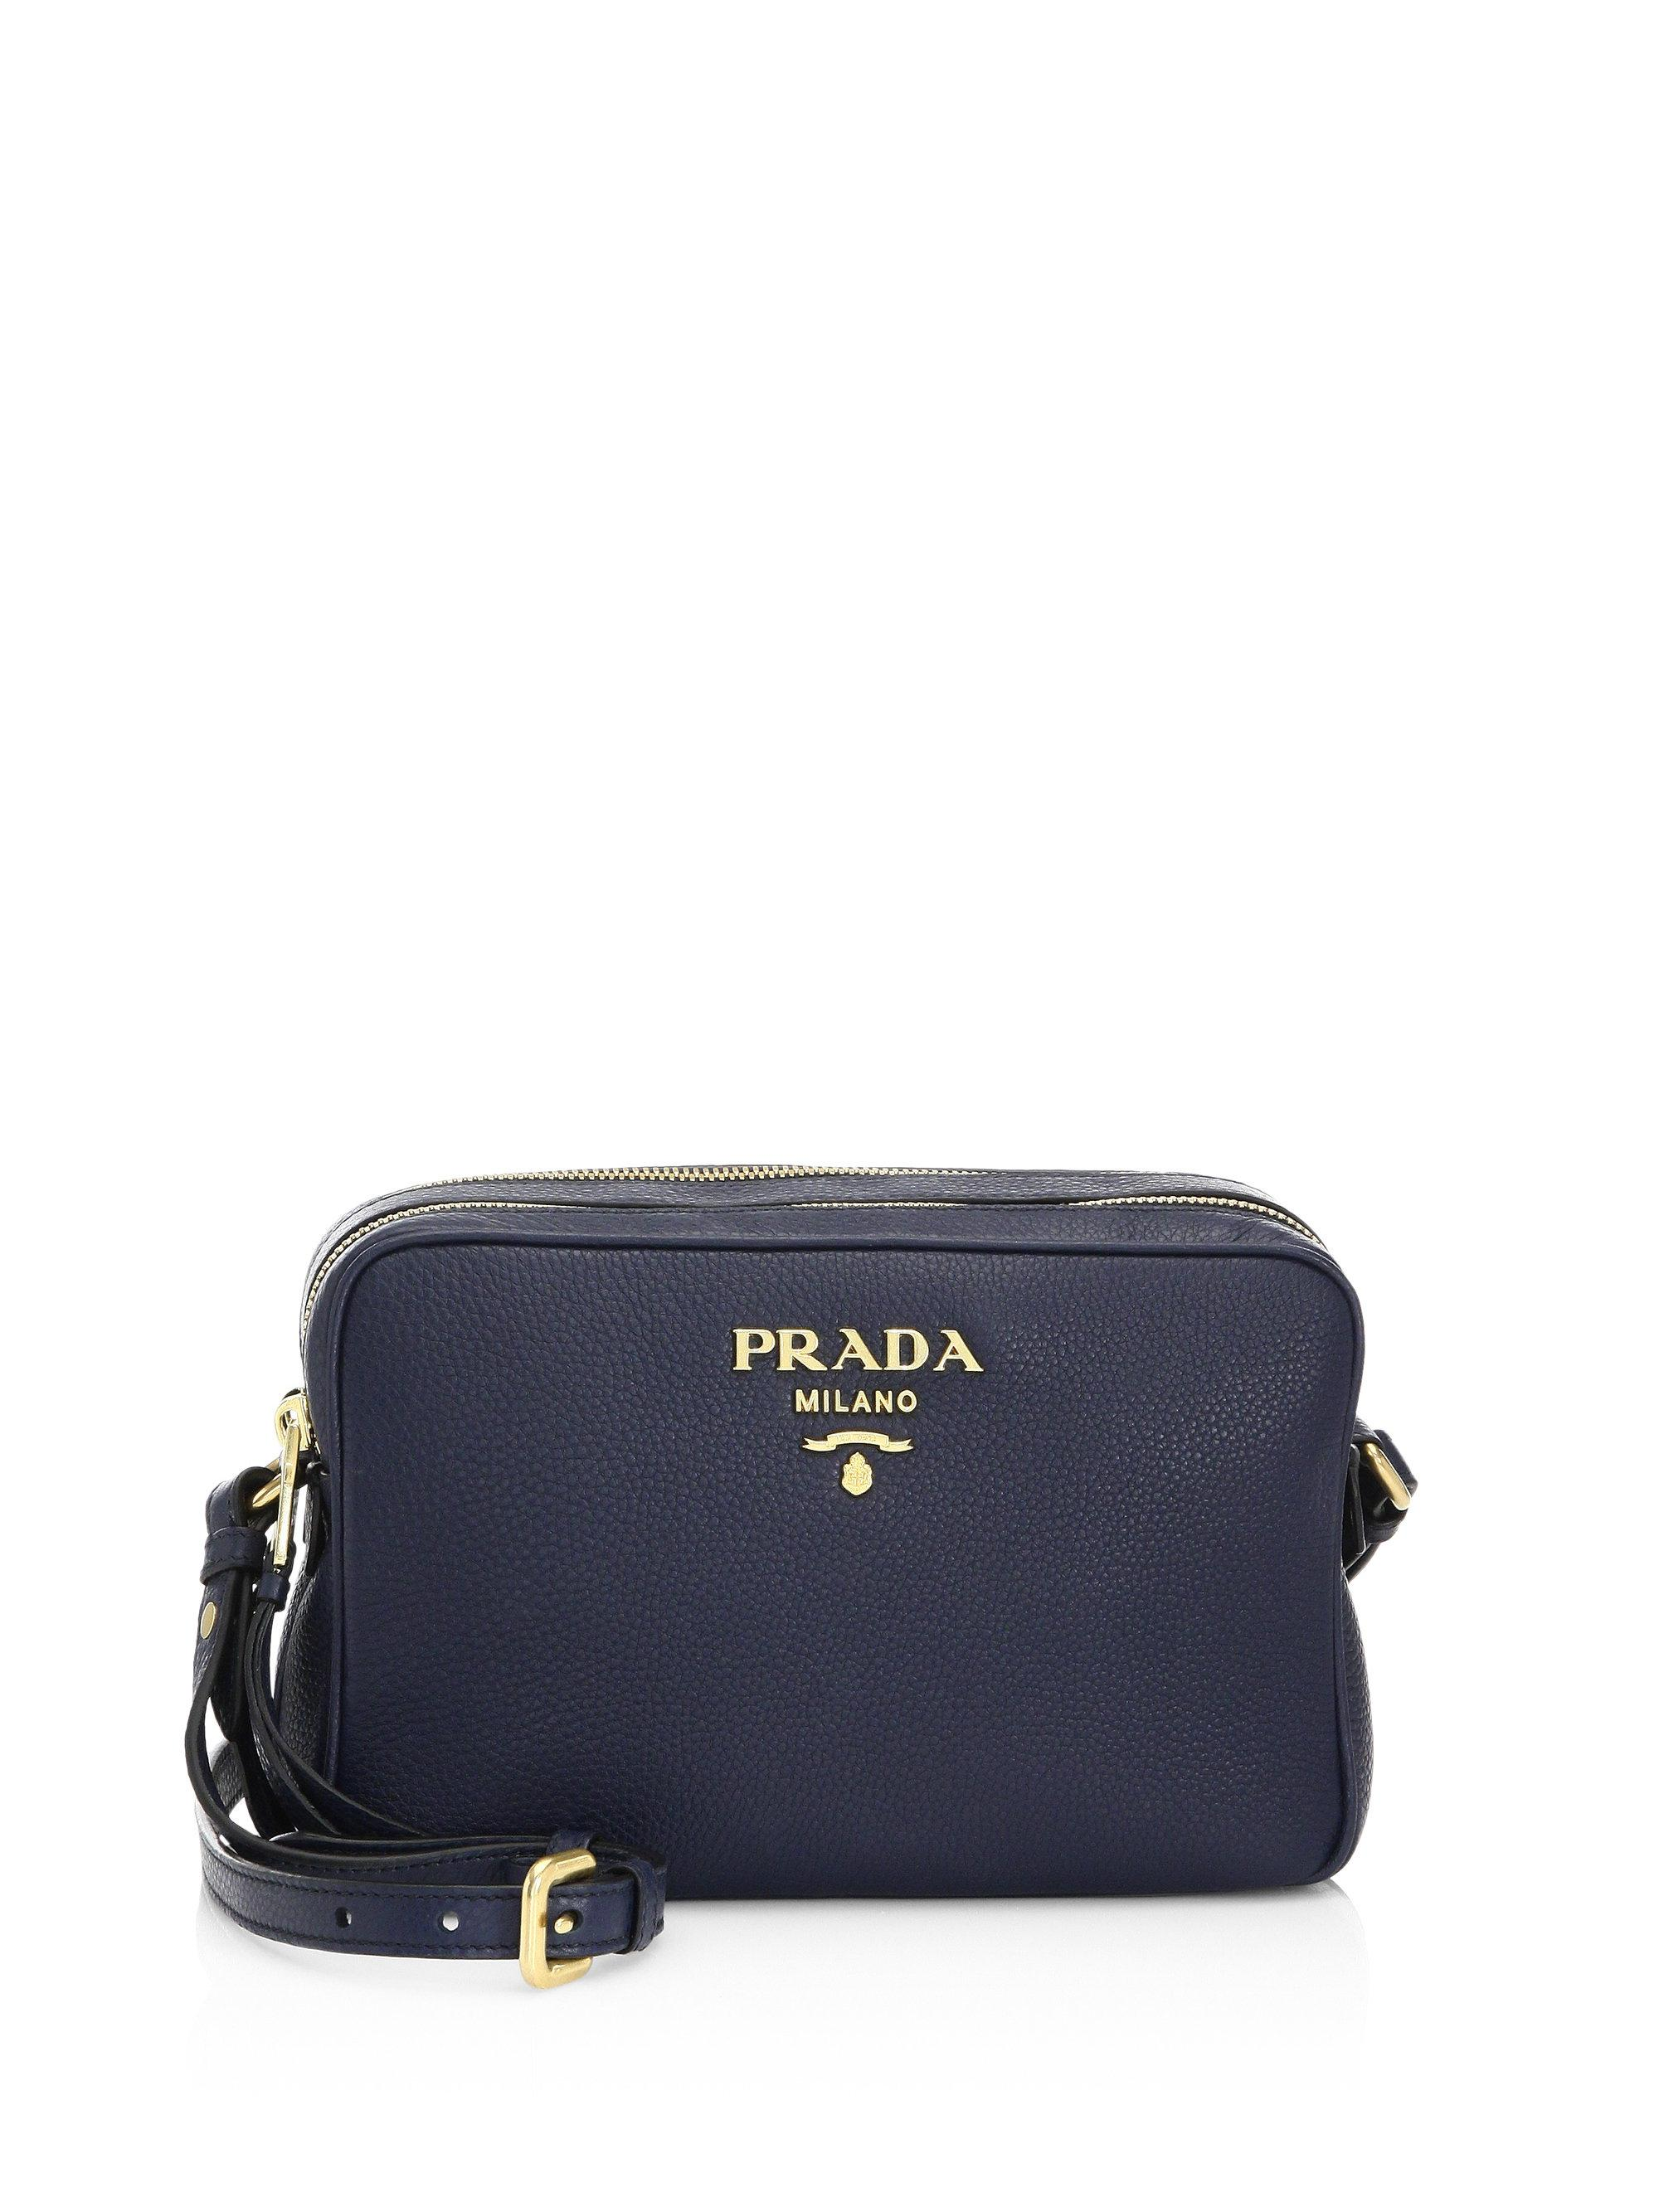 59cc2fac4779 reduced prada tessuto bomber tote lyst 2a210 4f184  real nylon sling bag  black 340e0 c8bdd get lyst prada daino crossbody camera bag in blue